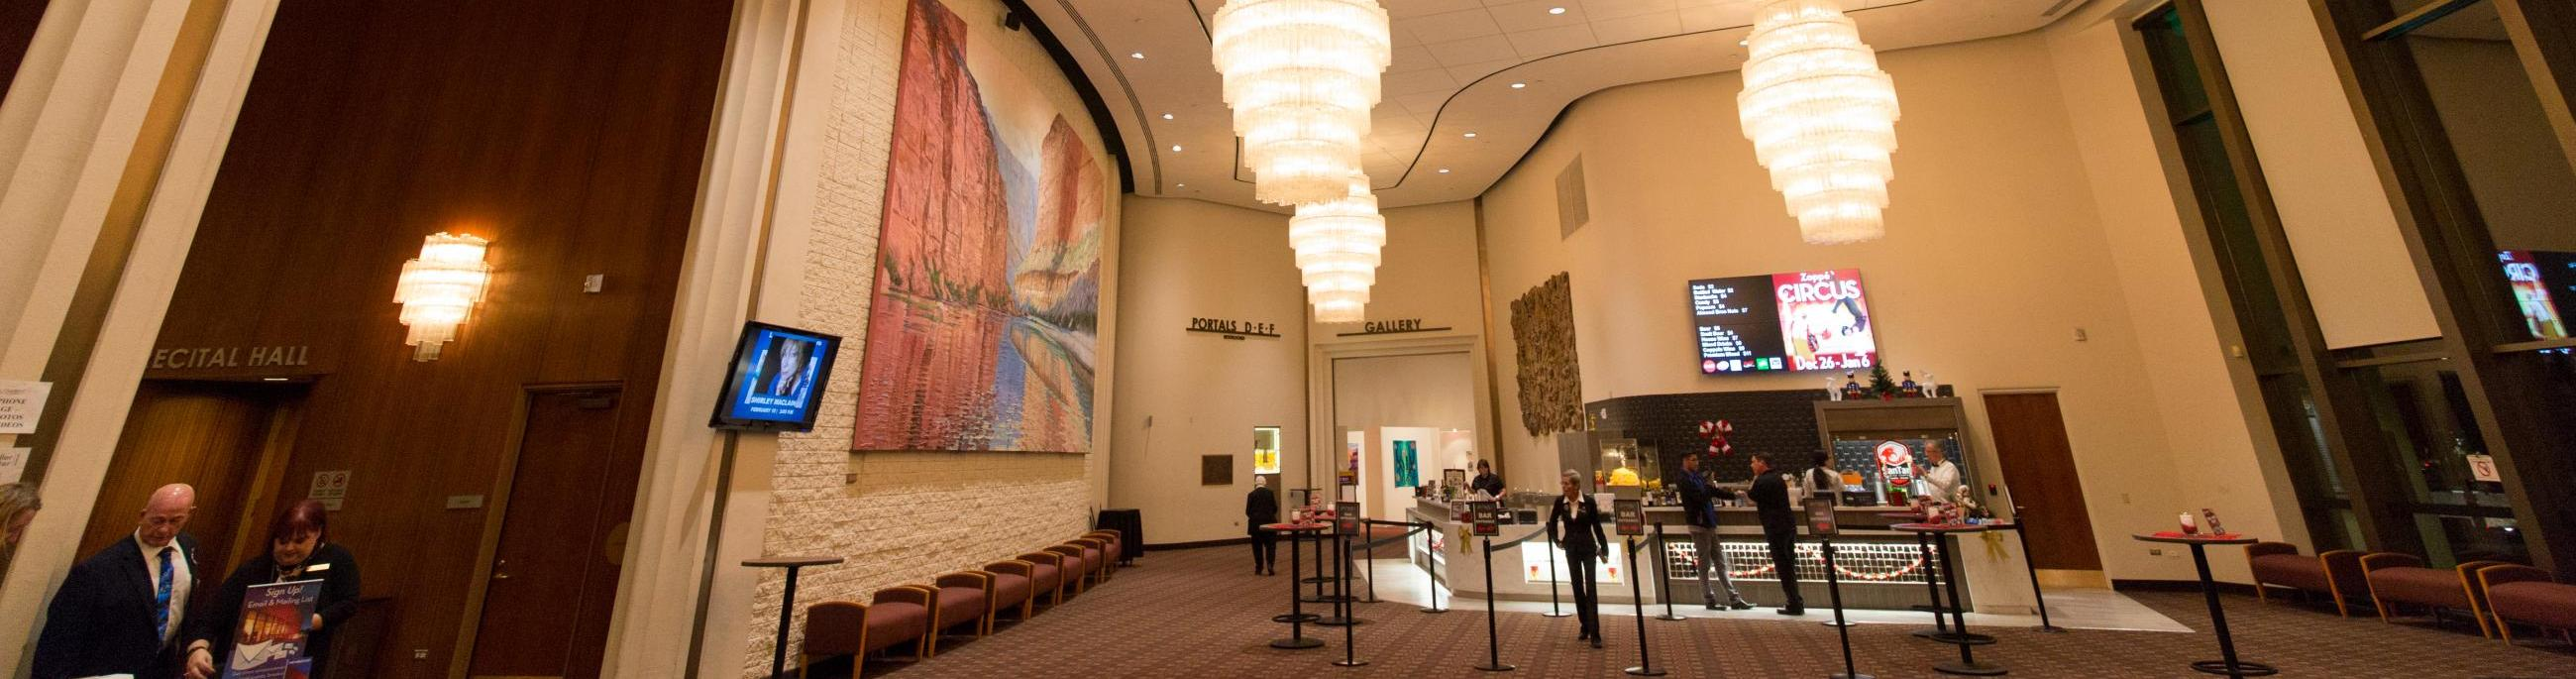 Chandler Center for the Arts has spaces the community and corporations can rent